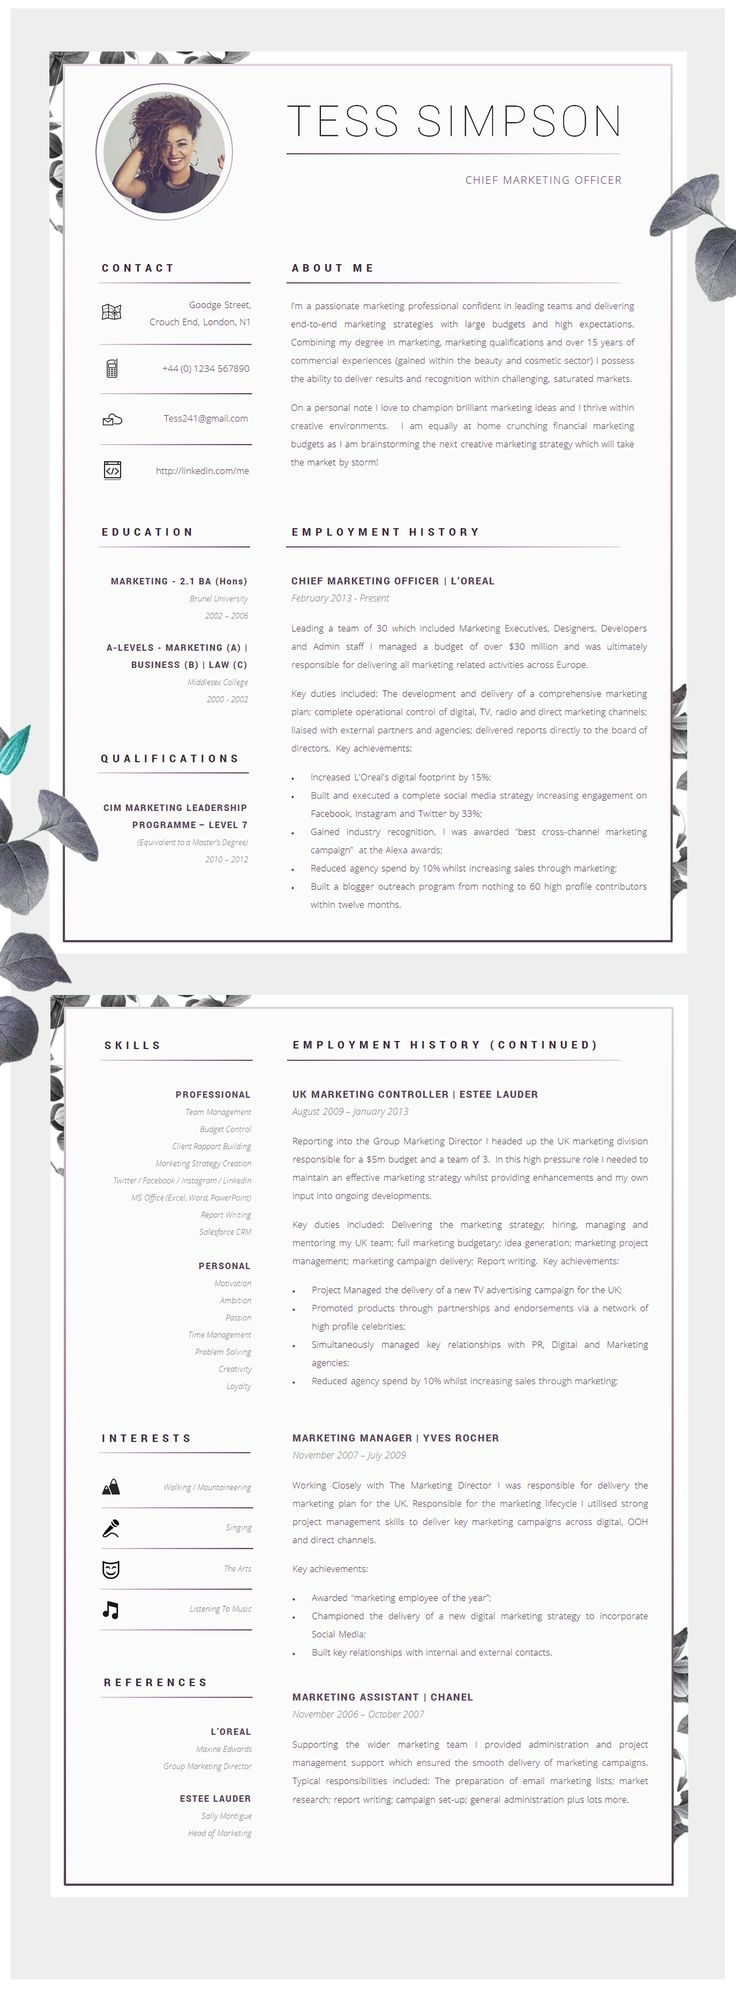 cv resume templates creative resume template cv template instant by cvdesignco on etsy - Professional Cv Template